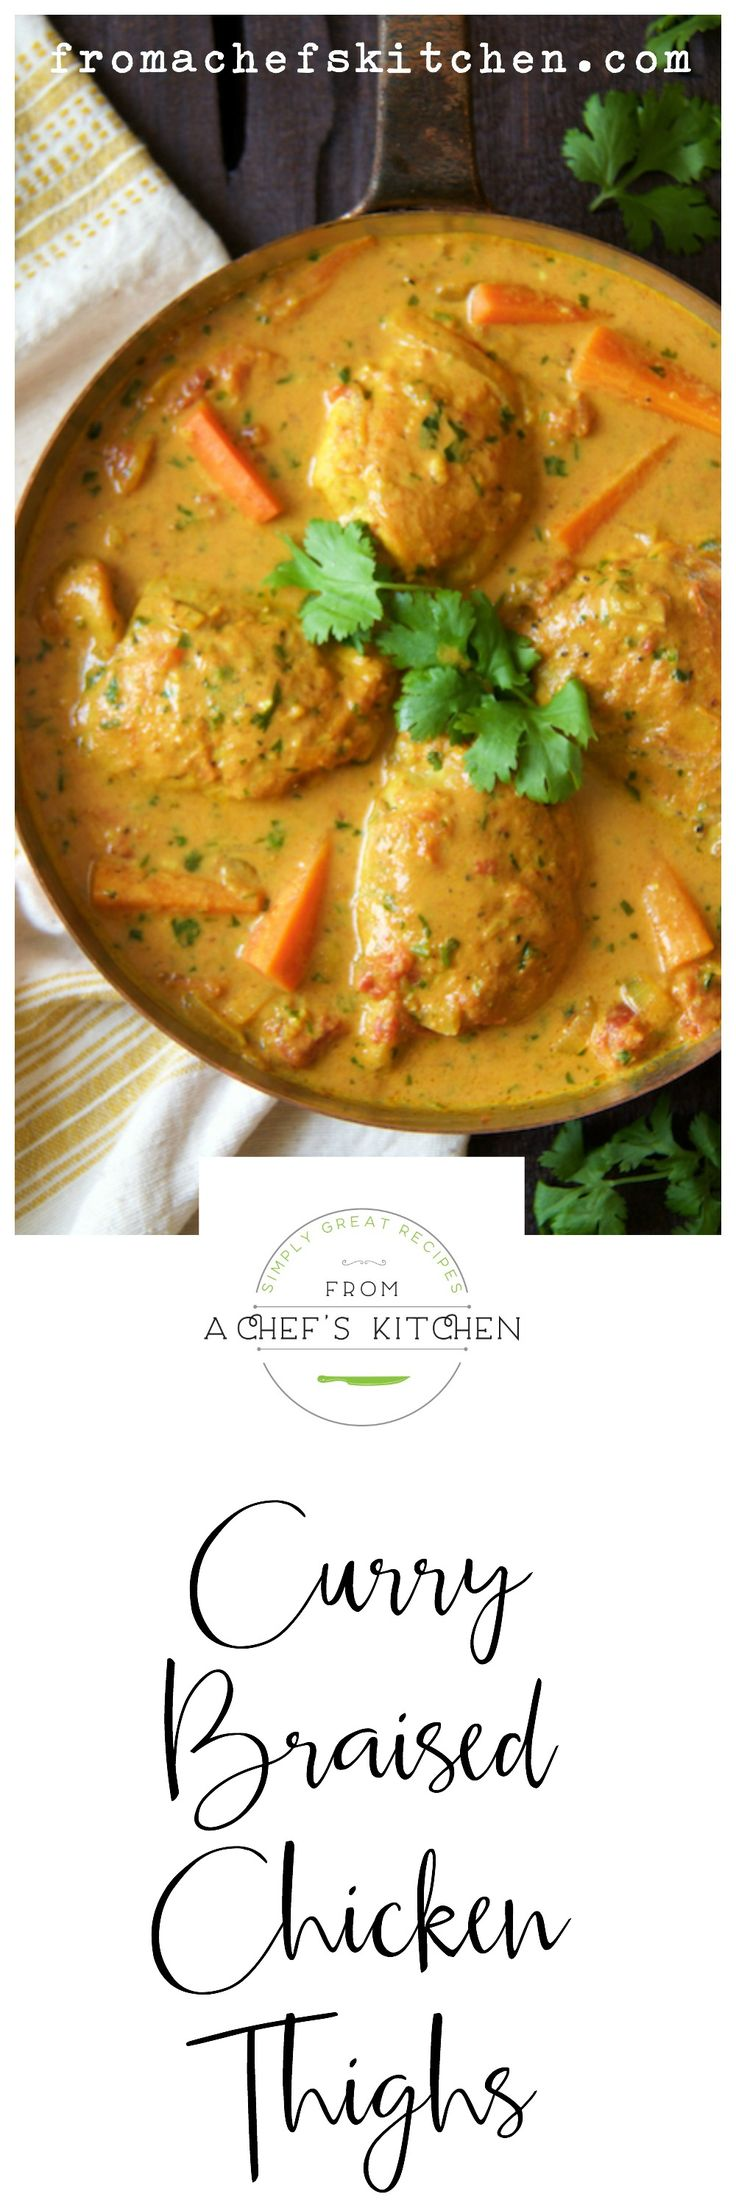 Spice up your night with these Indian-inspired Curry Braised Chicken Thighs!                                                                                                                                                                                 More